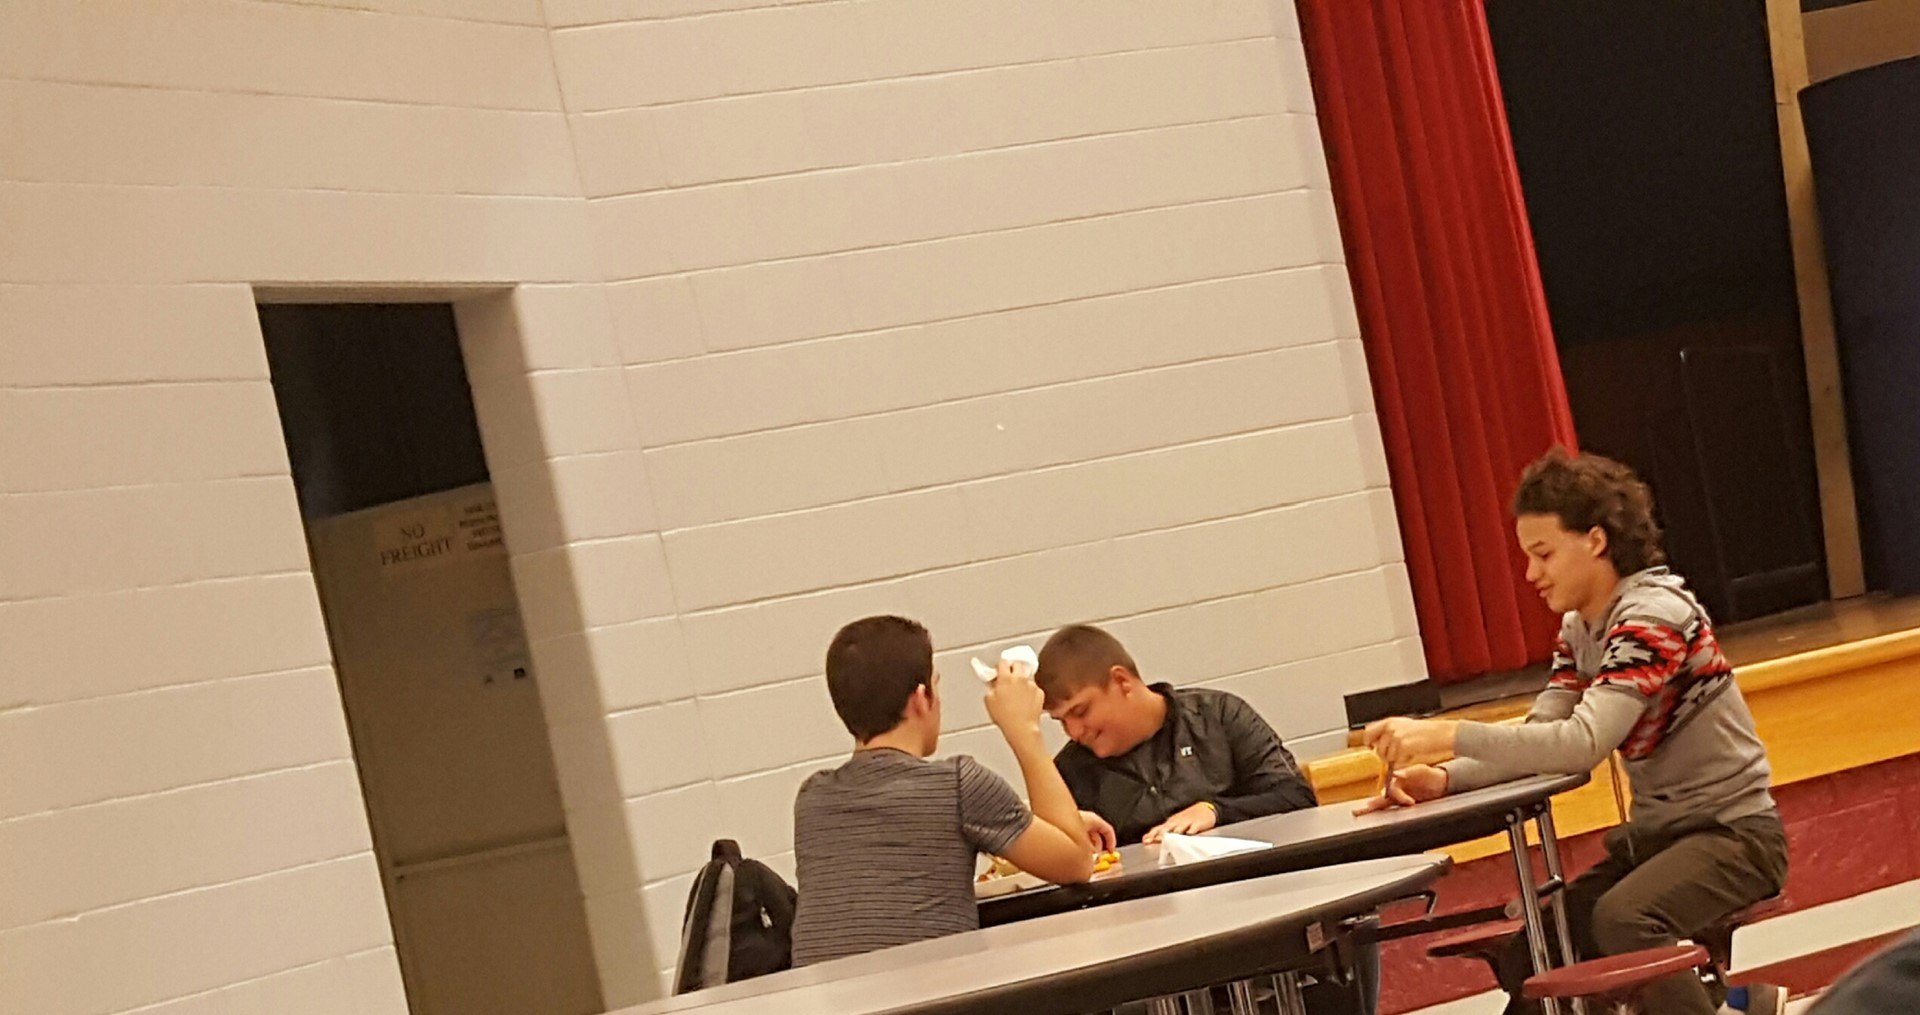 5th period lunch